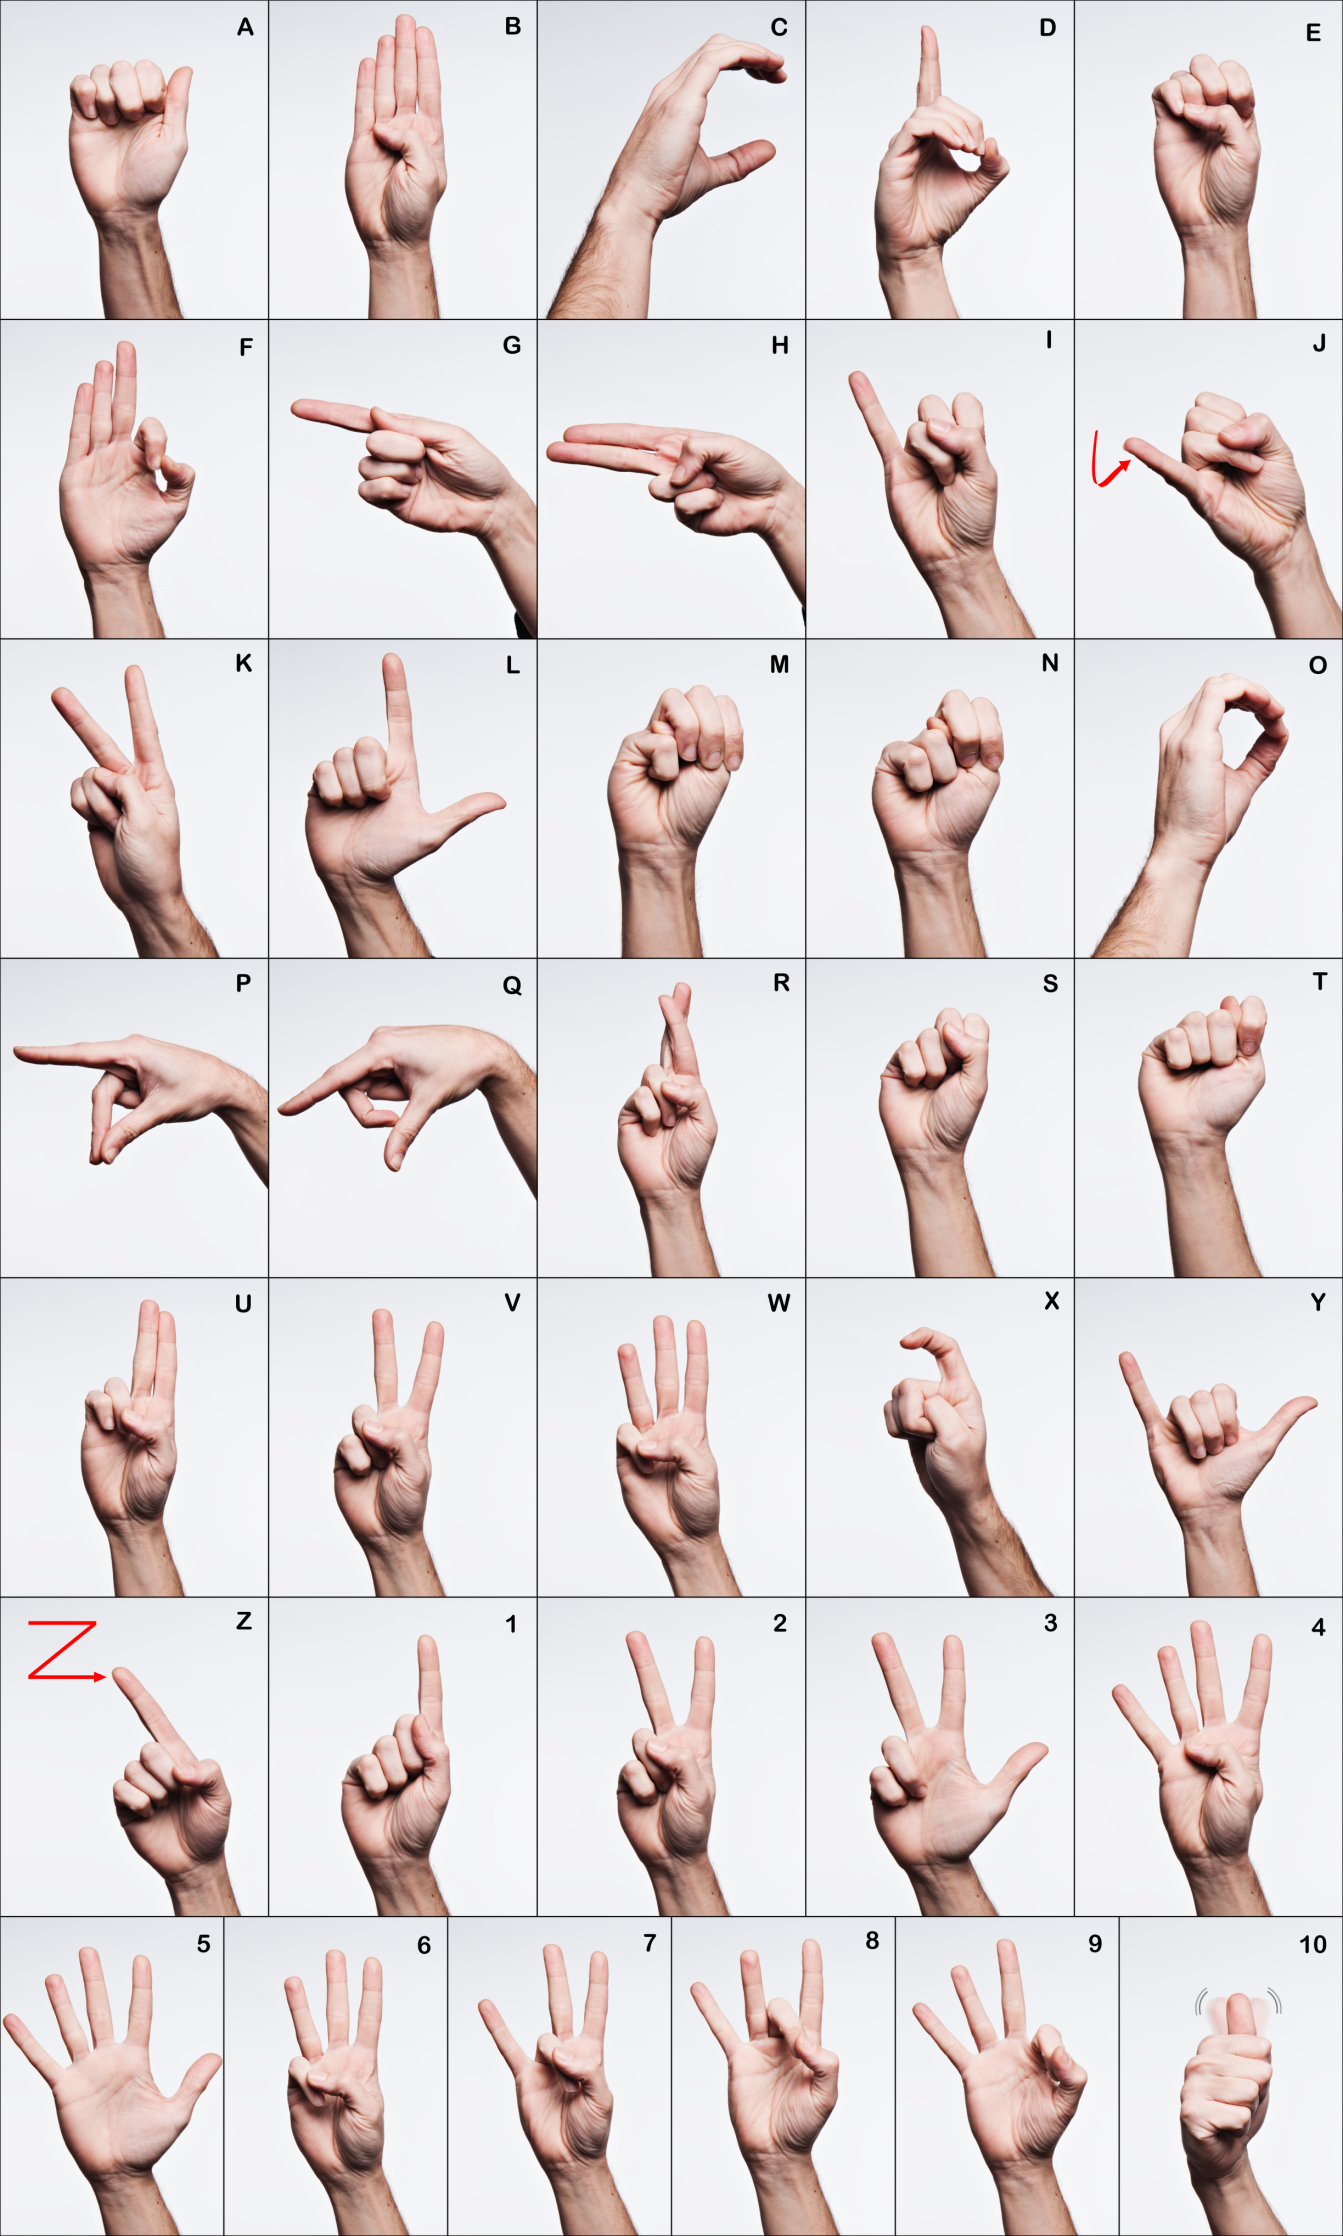 regular turn in american sign language essay Free essay: in america it is called american sign language (asl) sign language is different all over the world it is not universal for deaf people their.